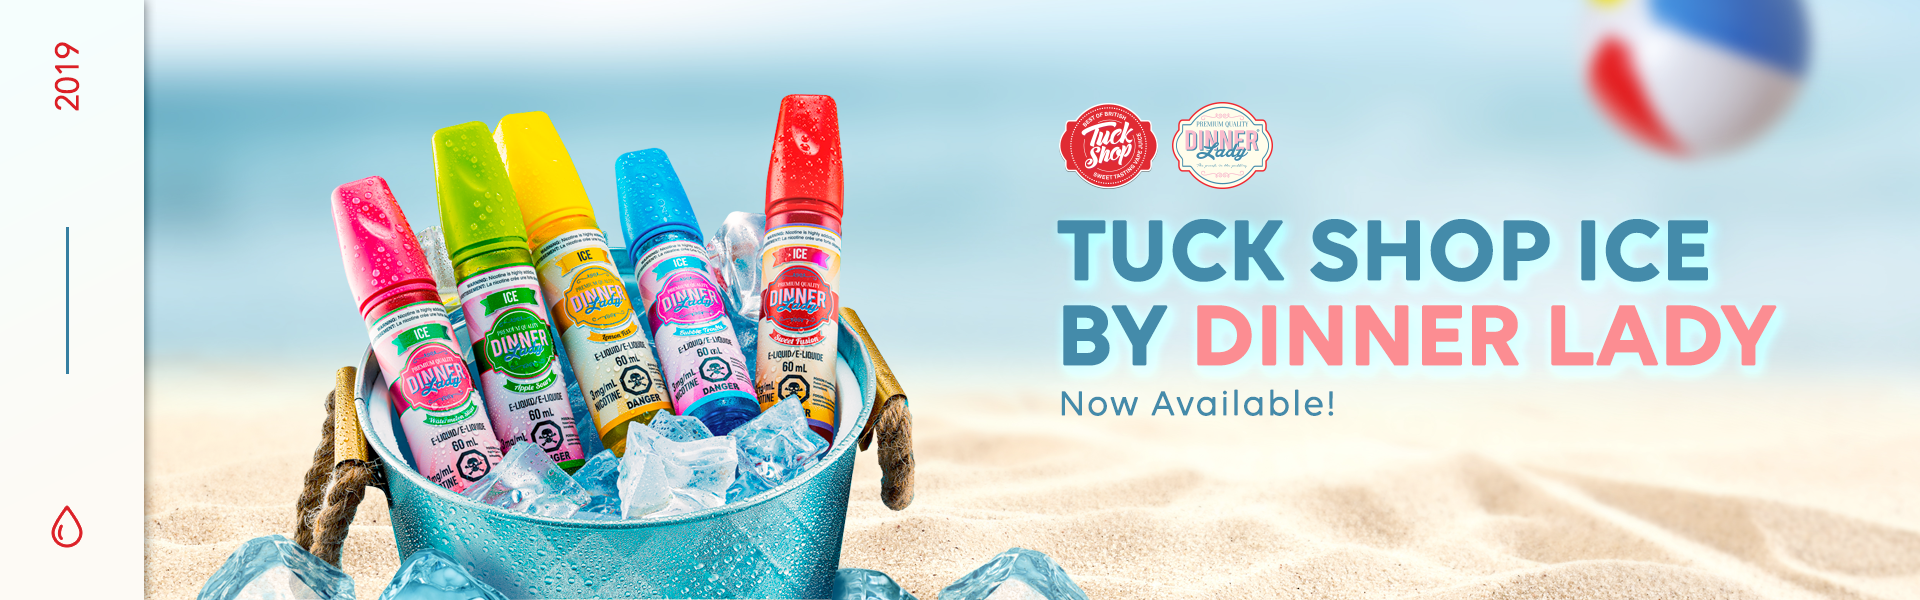 Tuck Shop Ice by Dinner Lady Now Available